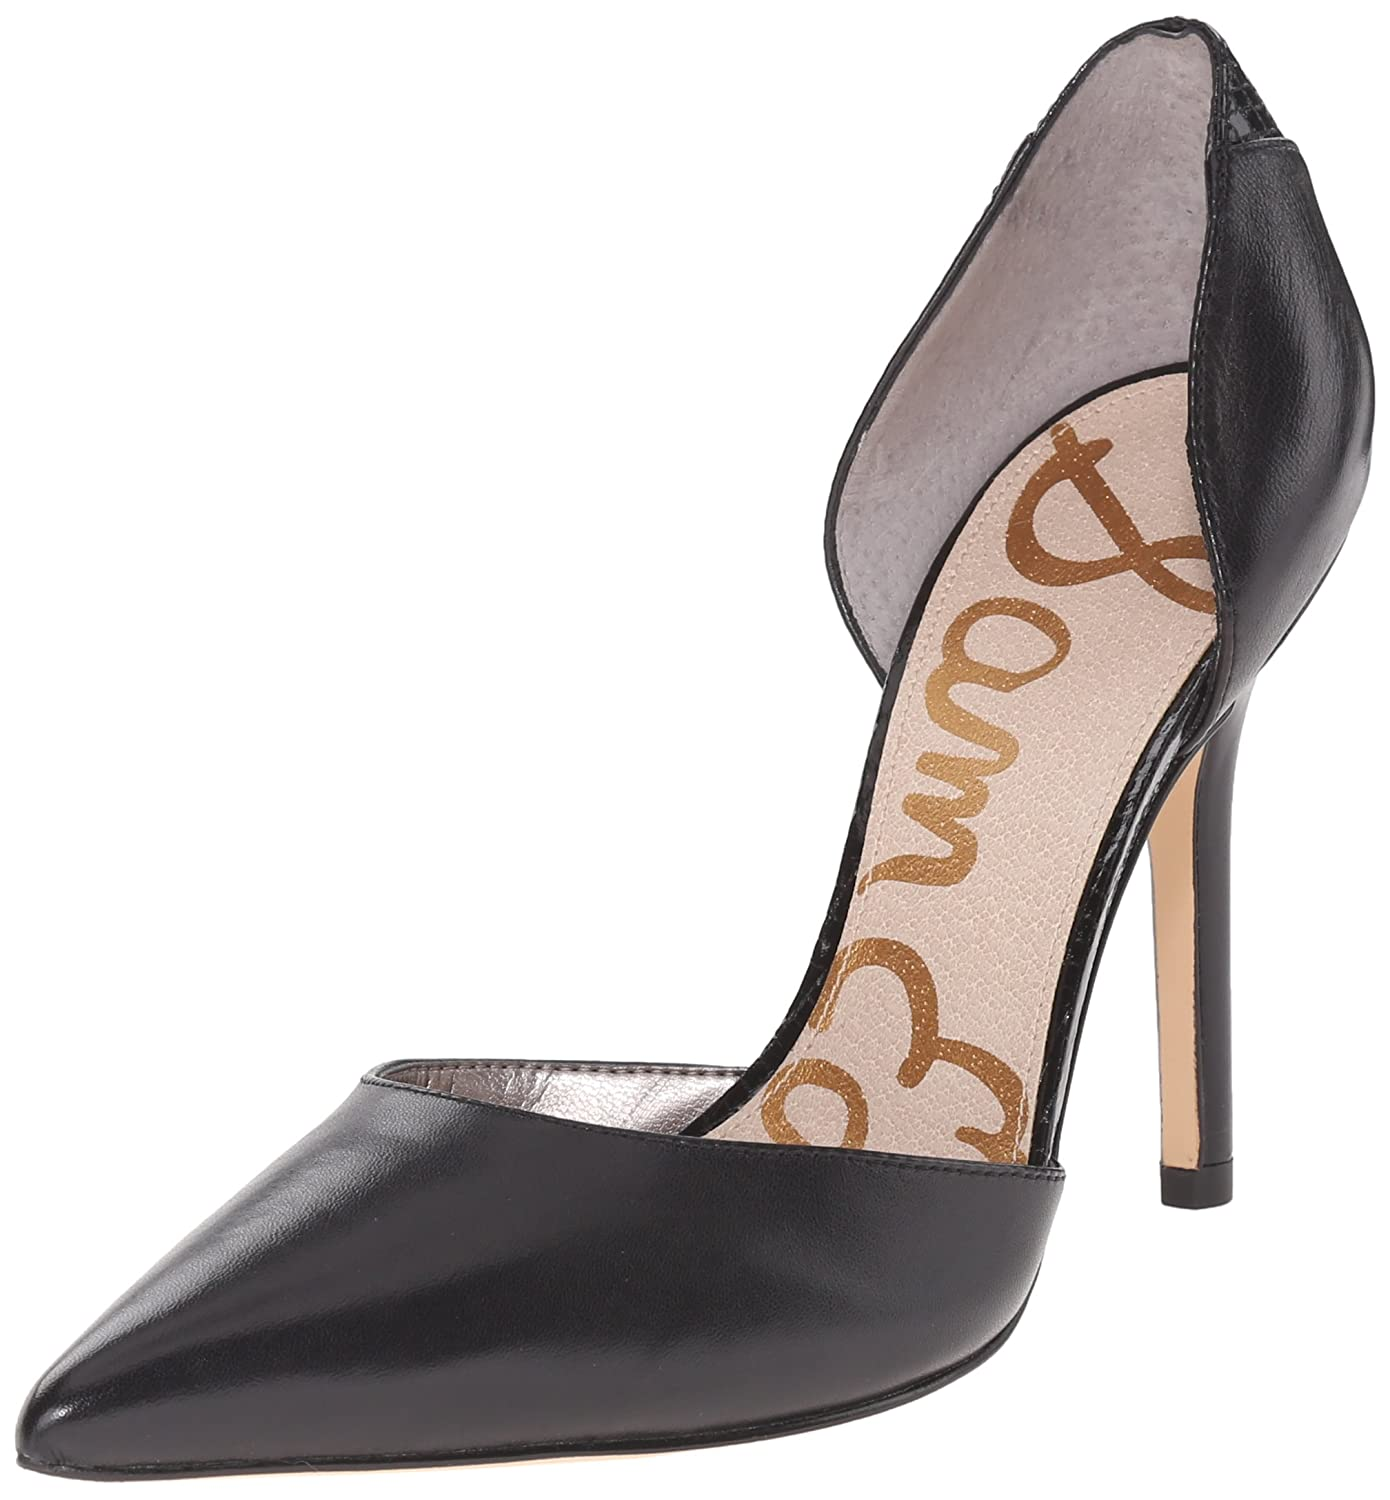 93c74dd68 durable modeling Sam Edelman Women s Delilah Dress Pump - plancap.com.ar